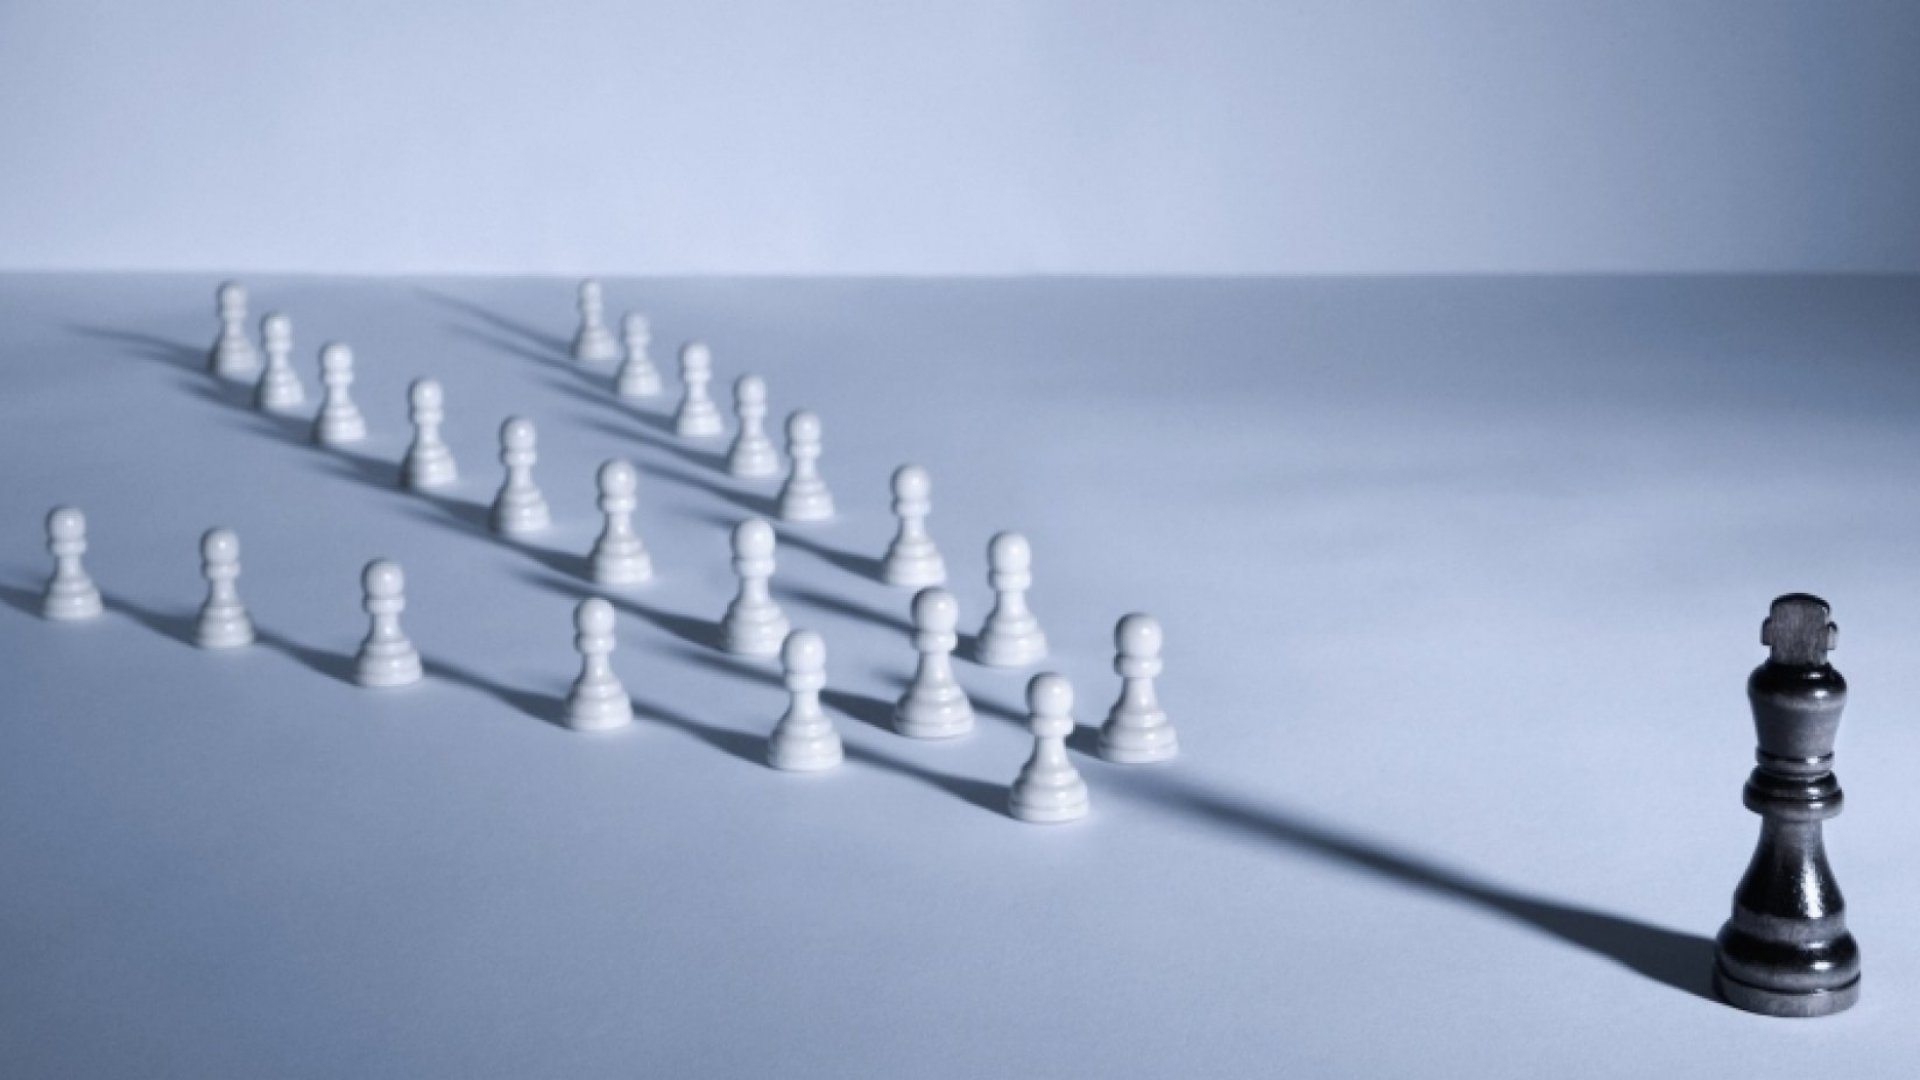 4 Lessons Even the Smartest Leaders Need to Learn